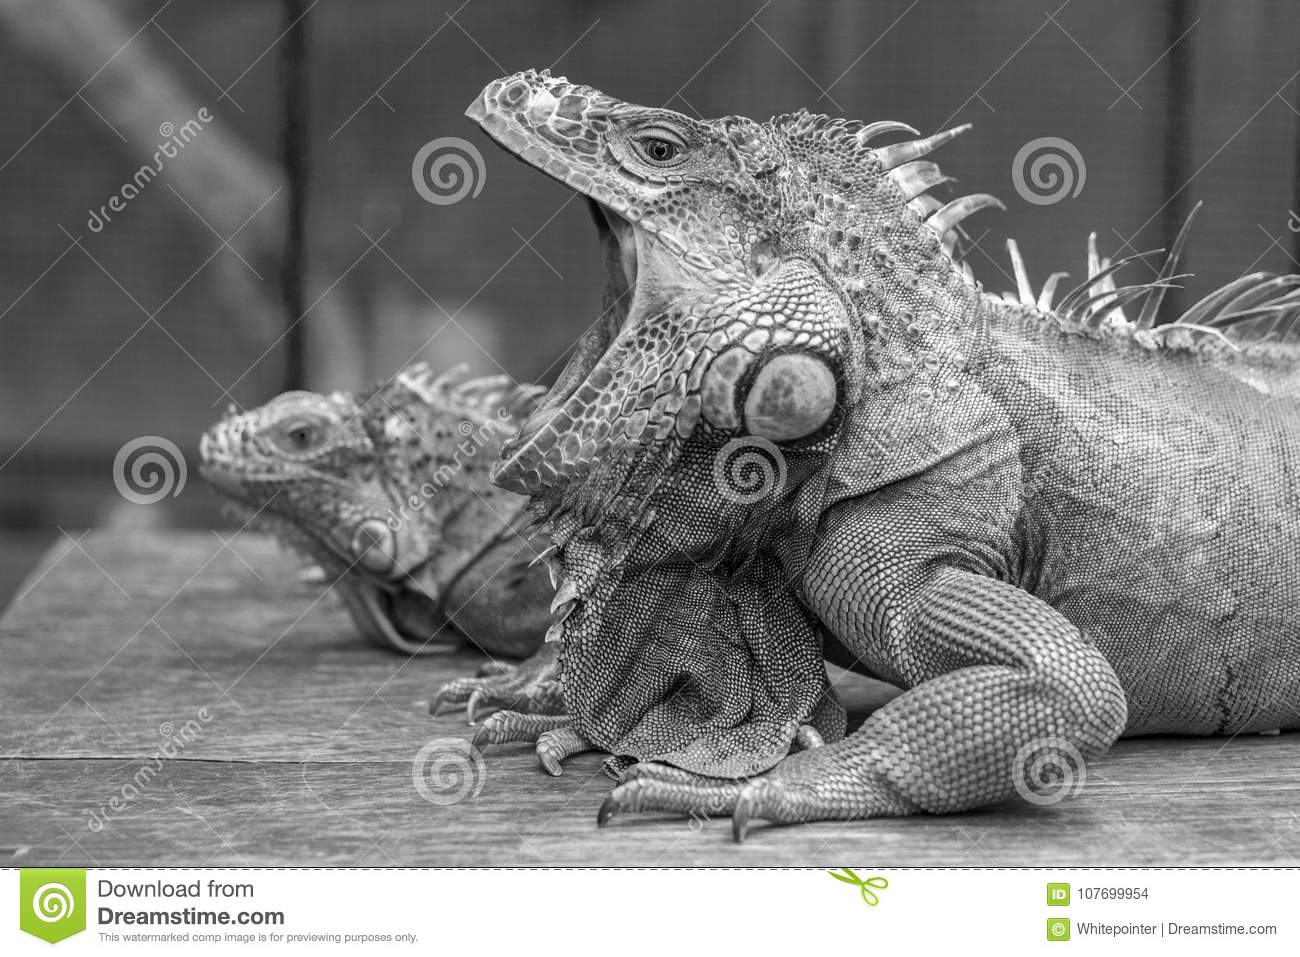 Lovely iguana enjoy the warm day sun baking and have a nice posed to the camera